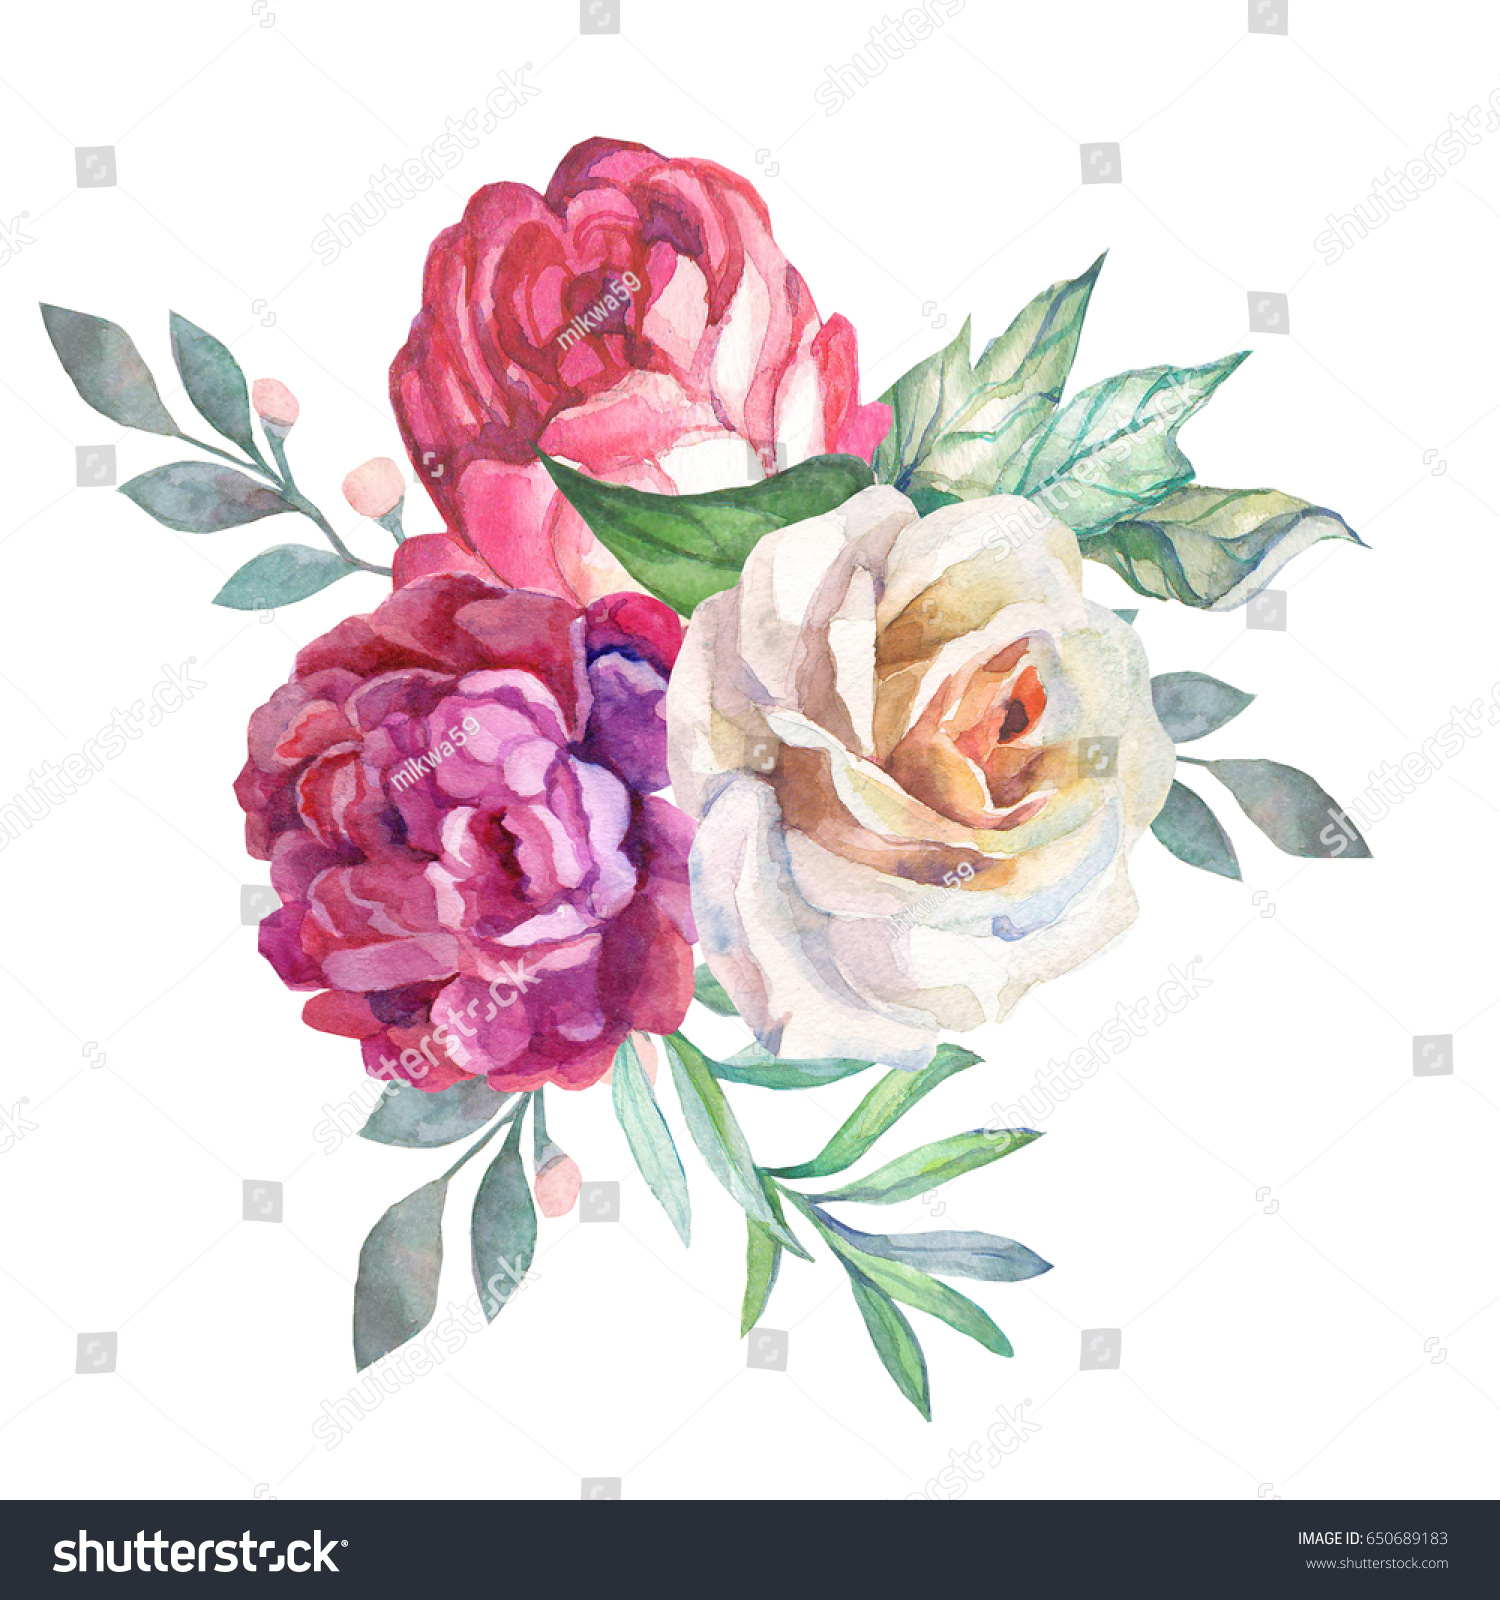 Watercolor Flowers Bouquet White Rose Stock Illustration 650689183 ...